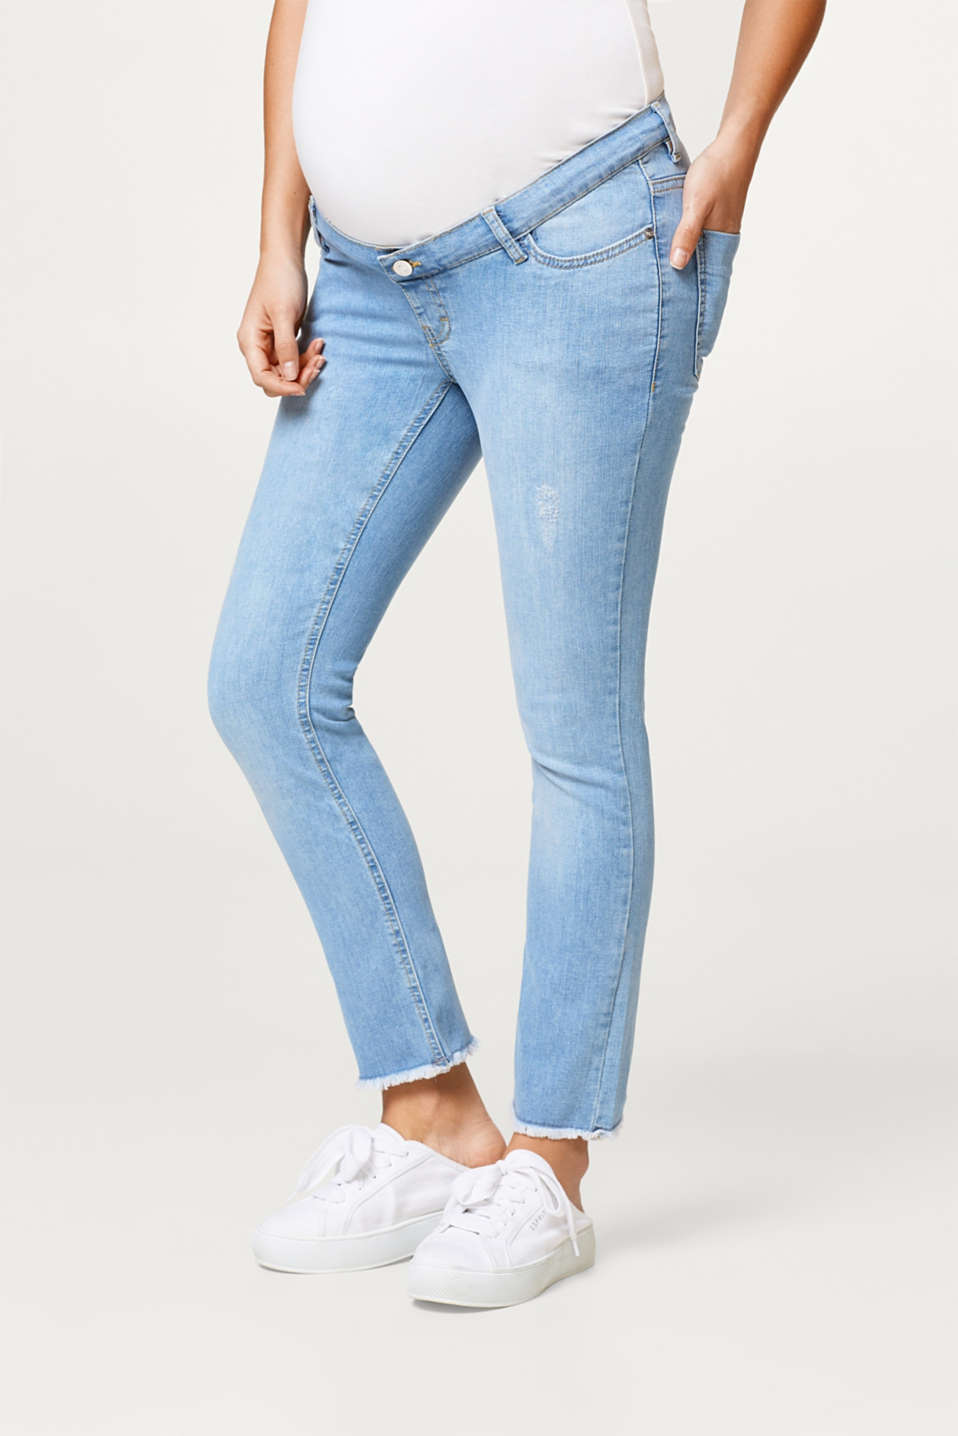 Esprit - Stretchjeans met used details en band over de buik